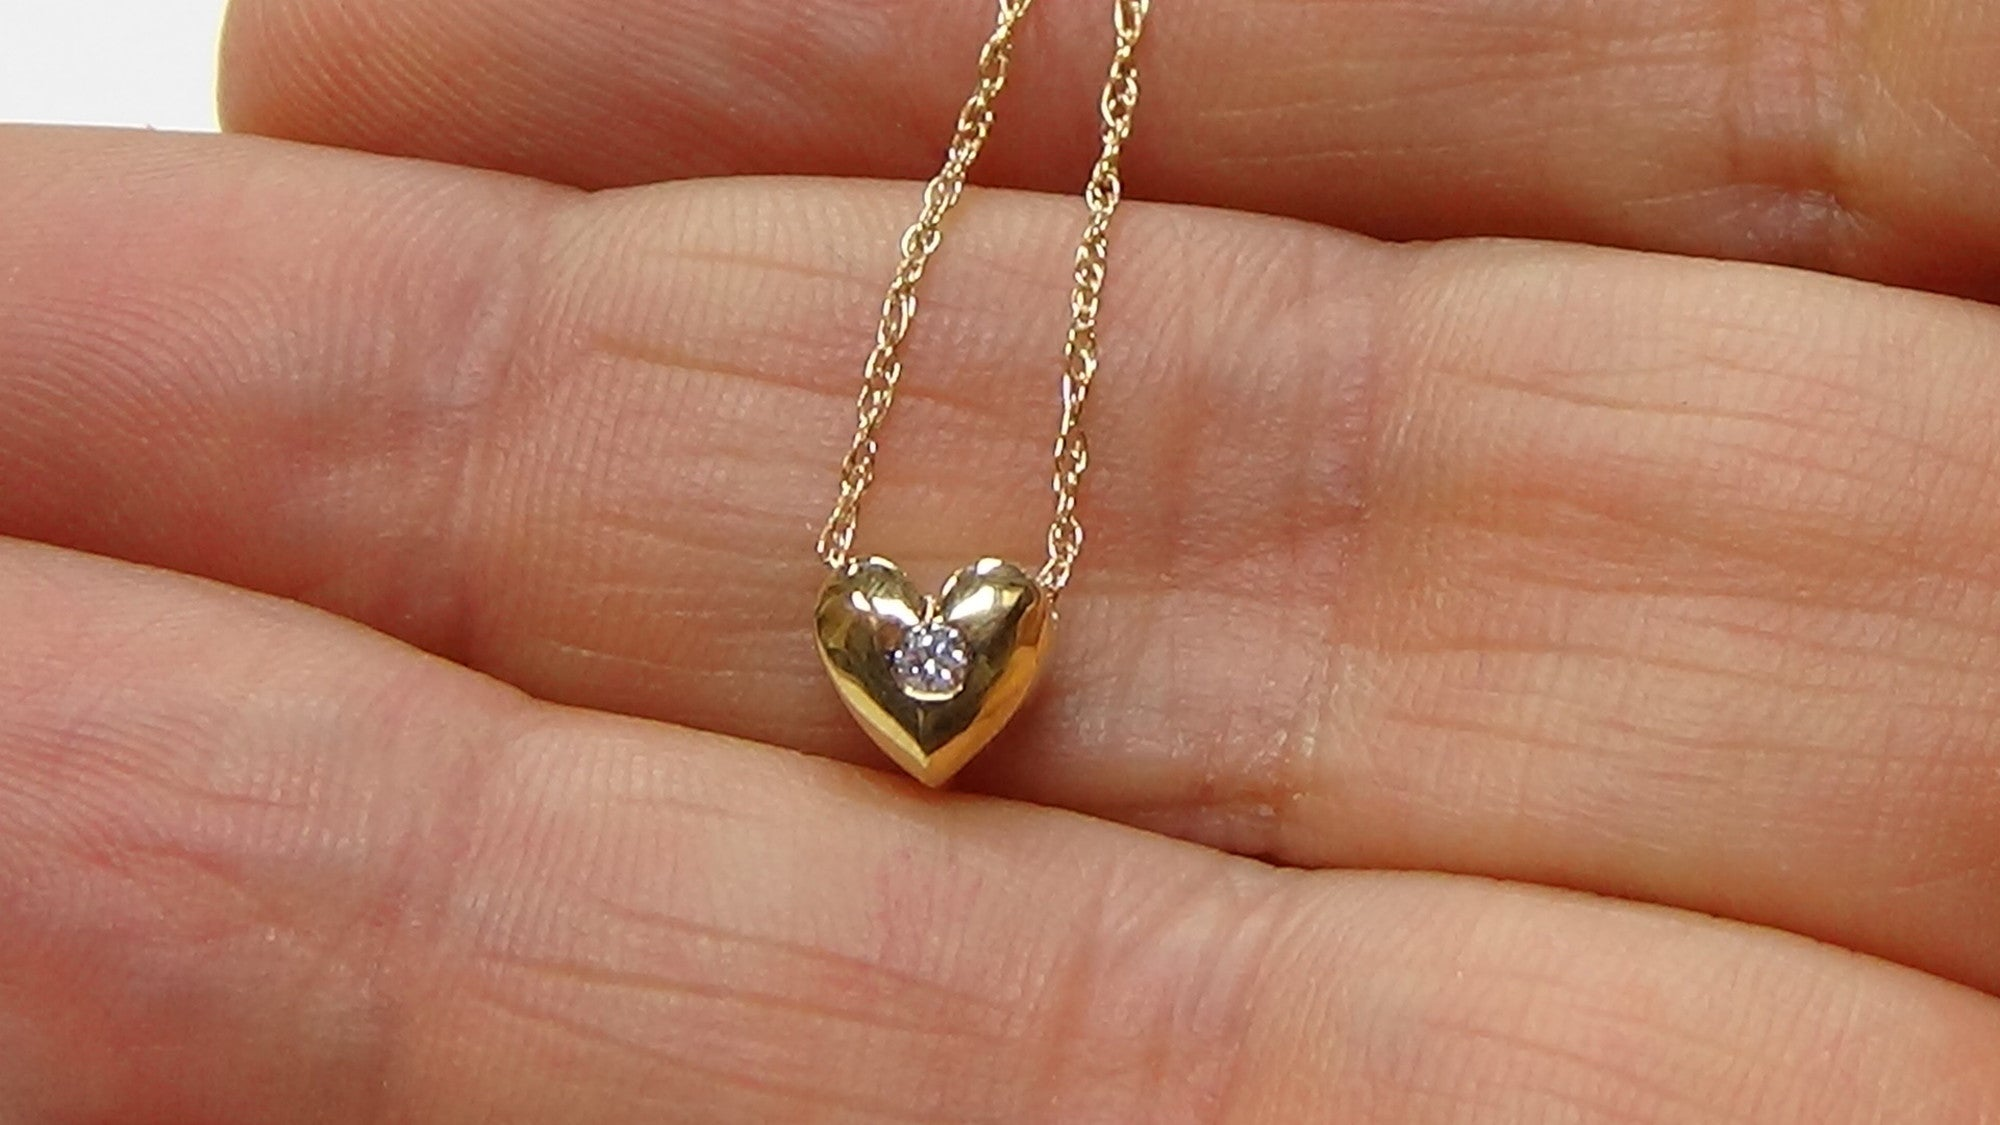 """Details about  /Diamond Heart Pendant Necklace F SI1 Solitaire 14k White Gold 16/"""" Chain Delicate"""